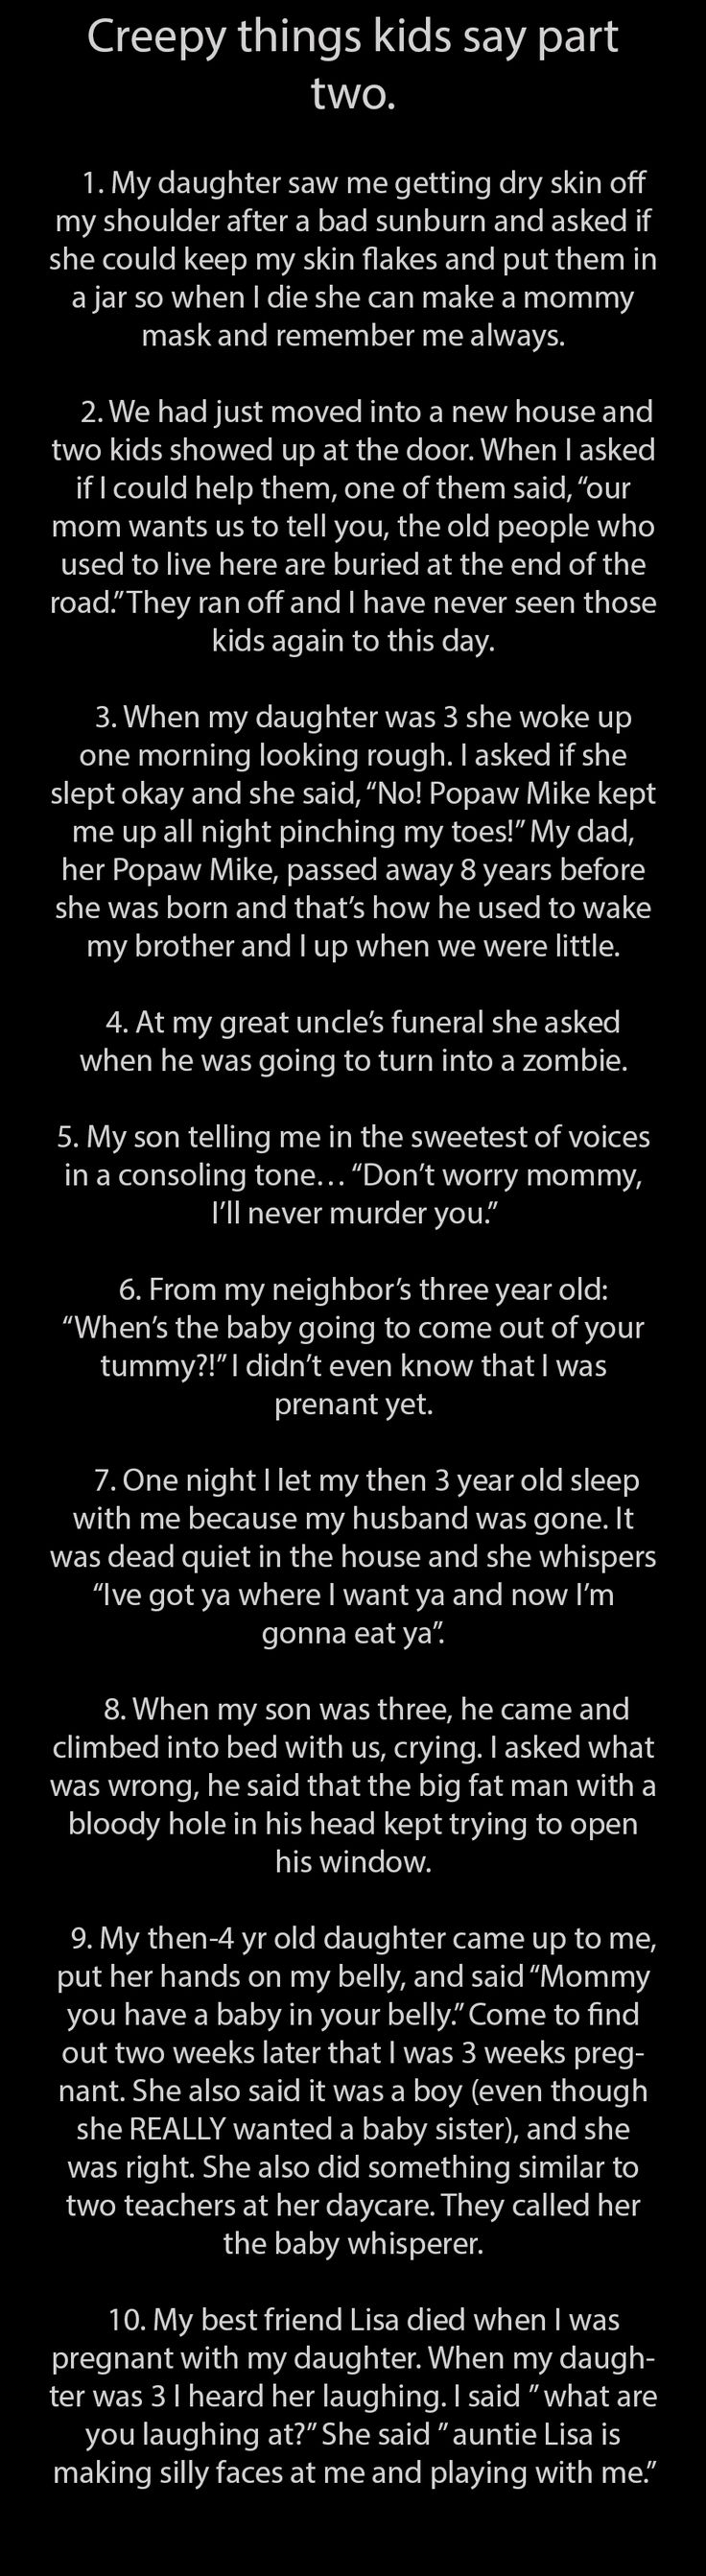 Uncategorized Spooky Stories For Little Kids best 25 kids scary stories ideas on pinterest horror creepy things say 2